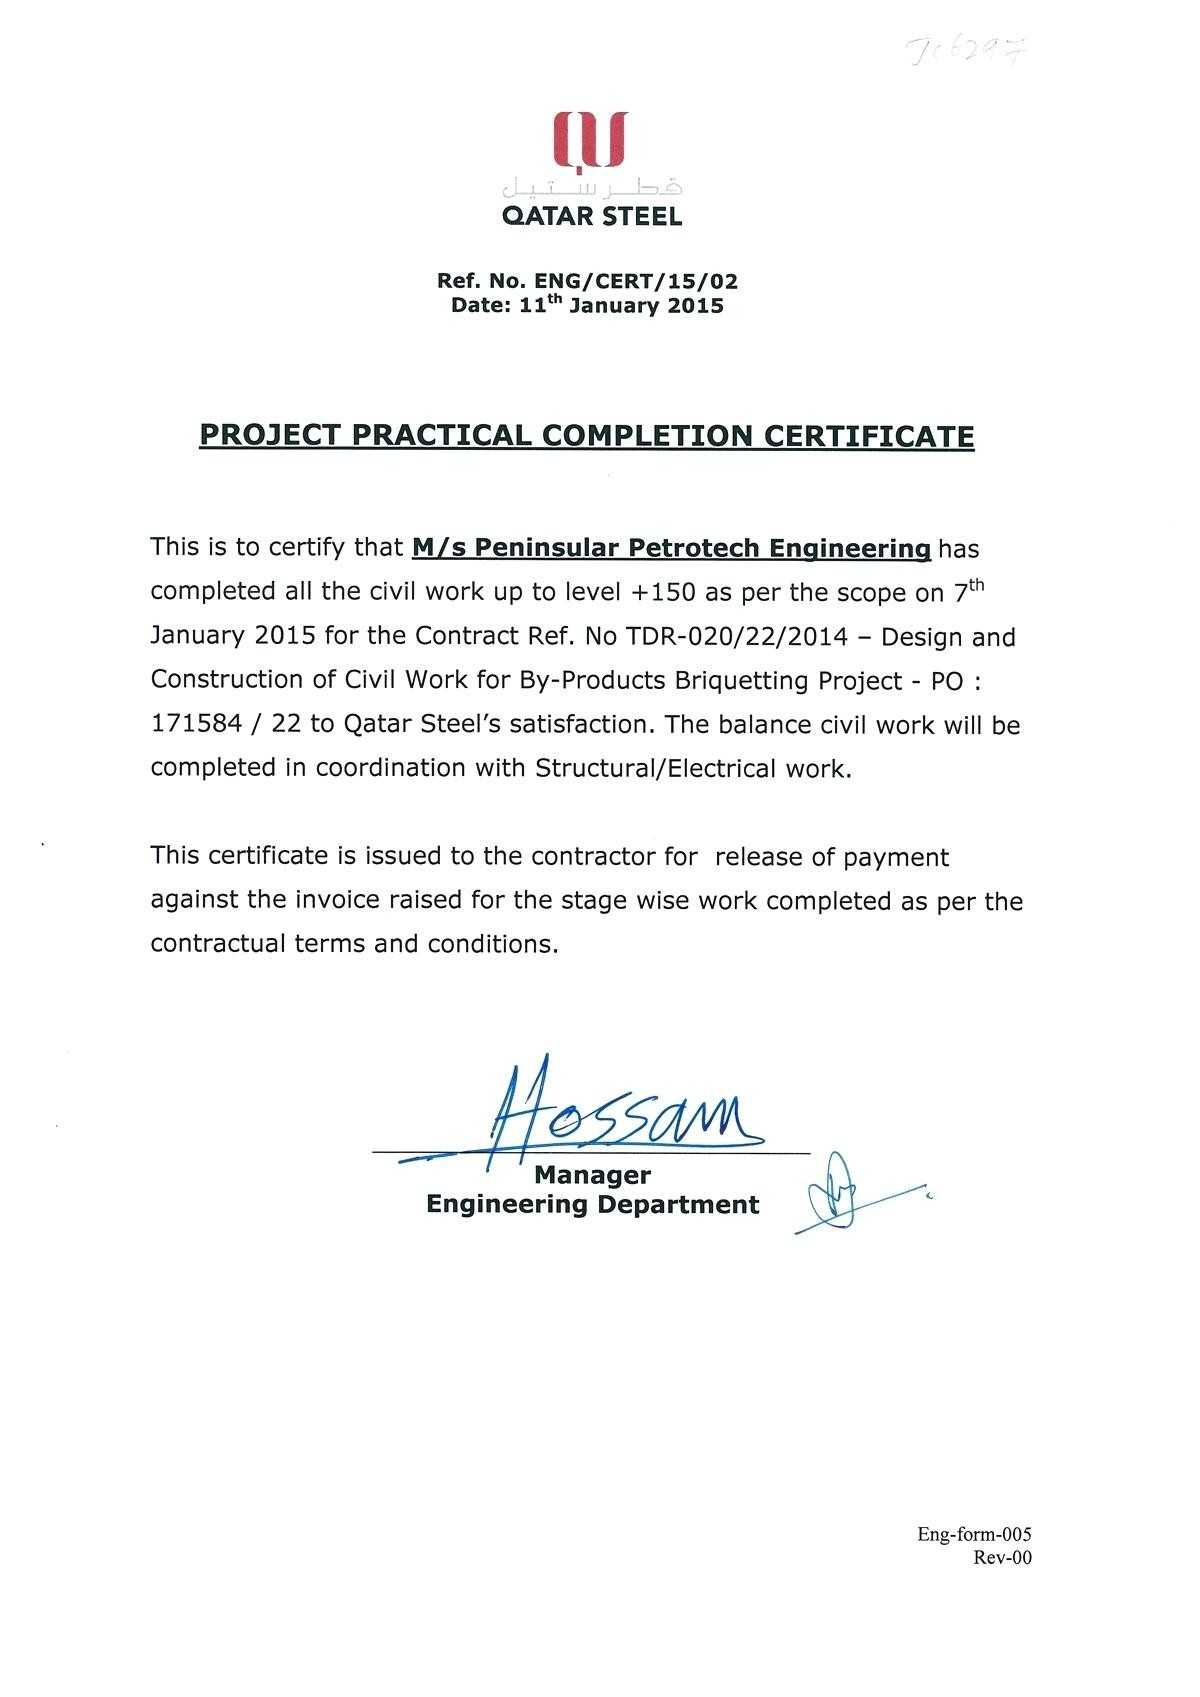 40 Free Certificate Of Conformance Templates Forms 5125 Intended For Practical Completion Certificate Template Uk